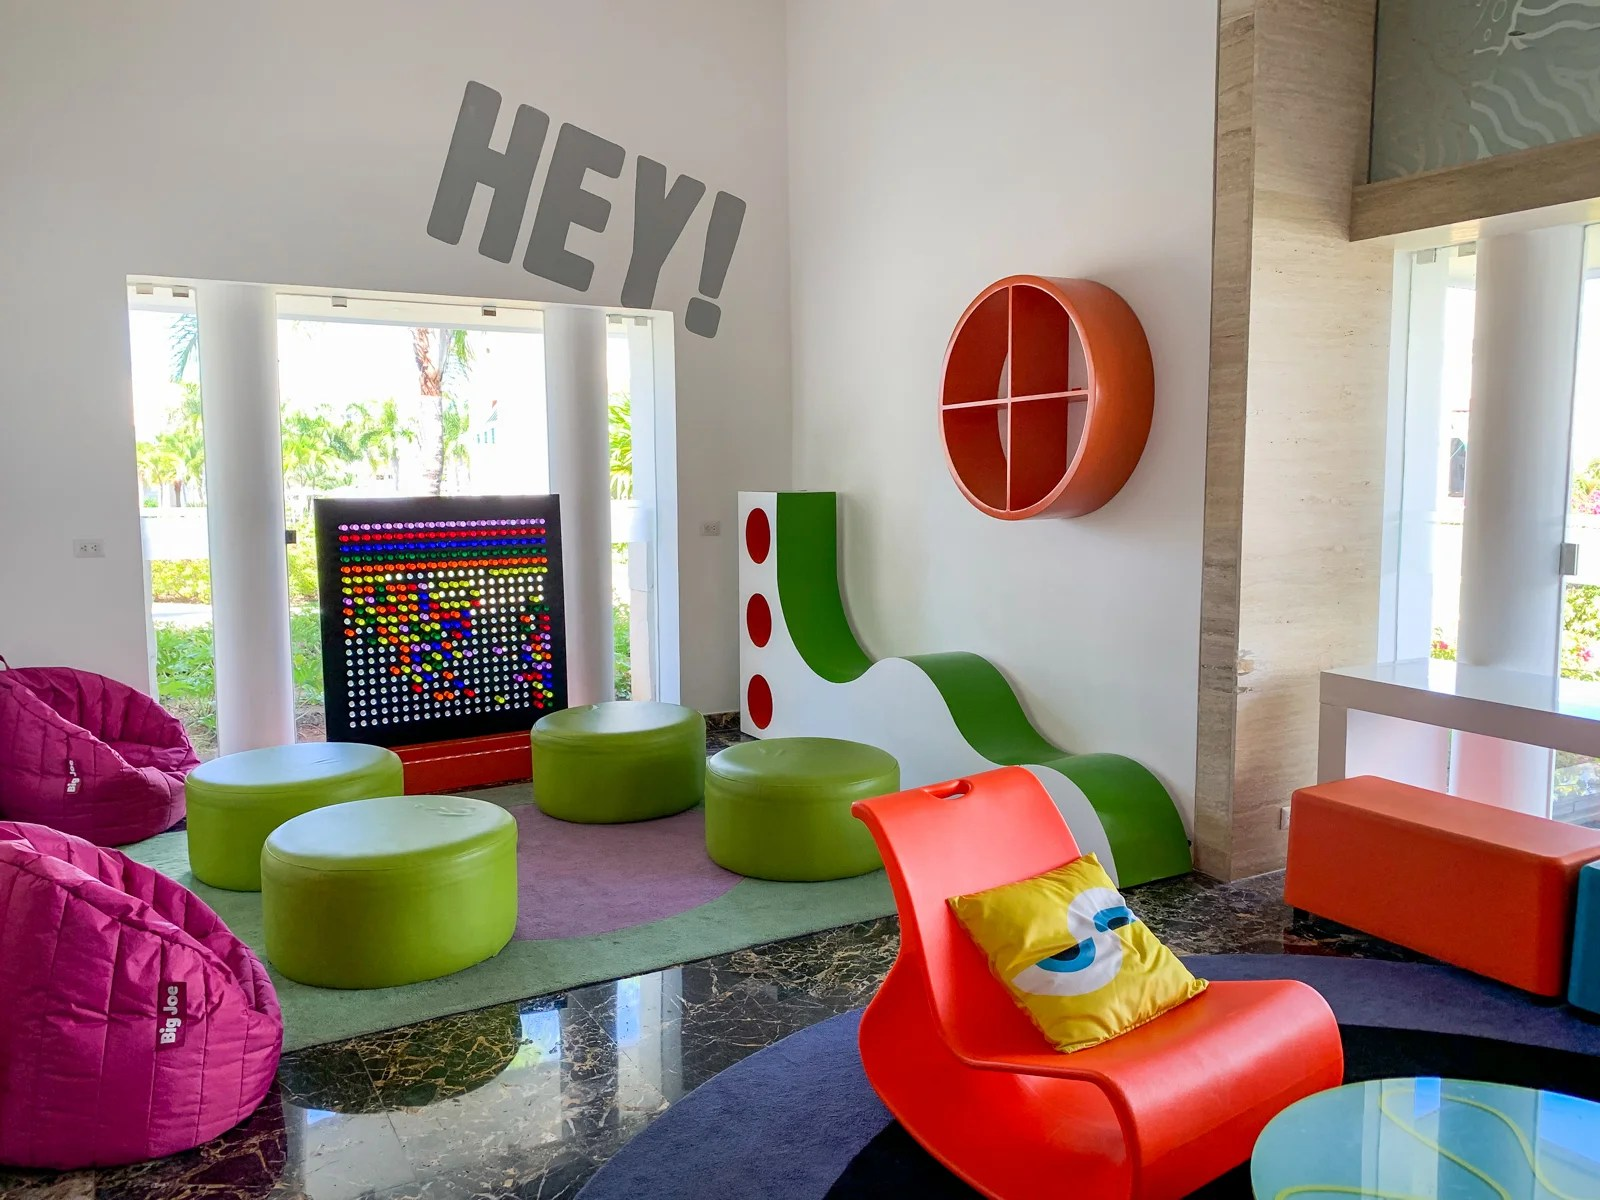 Admirable Review Nickelodeon Hotels Resorts Punta Cana A Family Caraccident5 Cool Chair Designs And Ideas Caraccident5Info